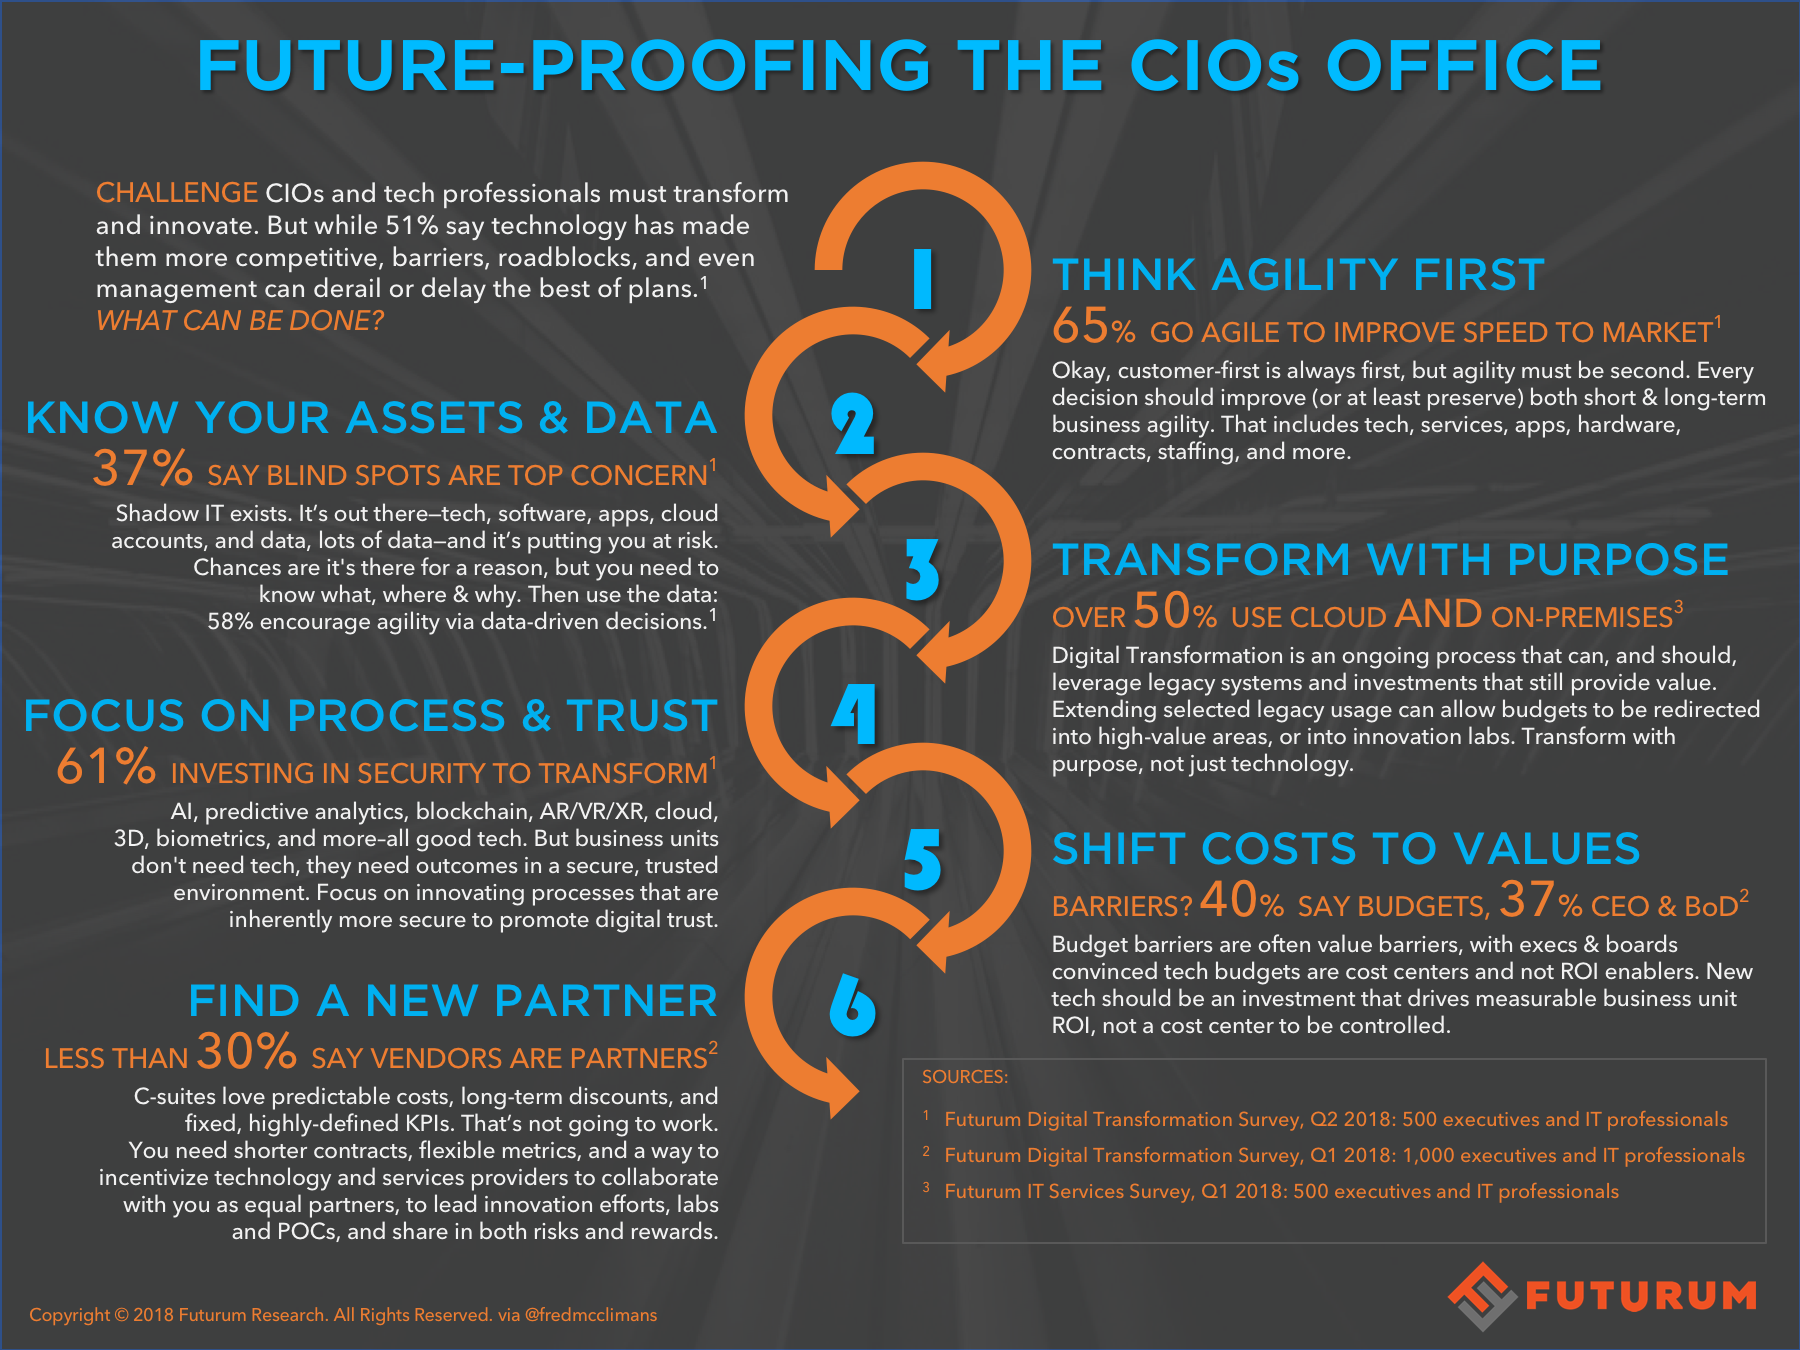 6 Approaches to Future-Proofing the CIOs Office - @FredMcClimans